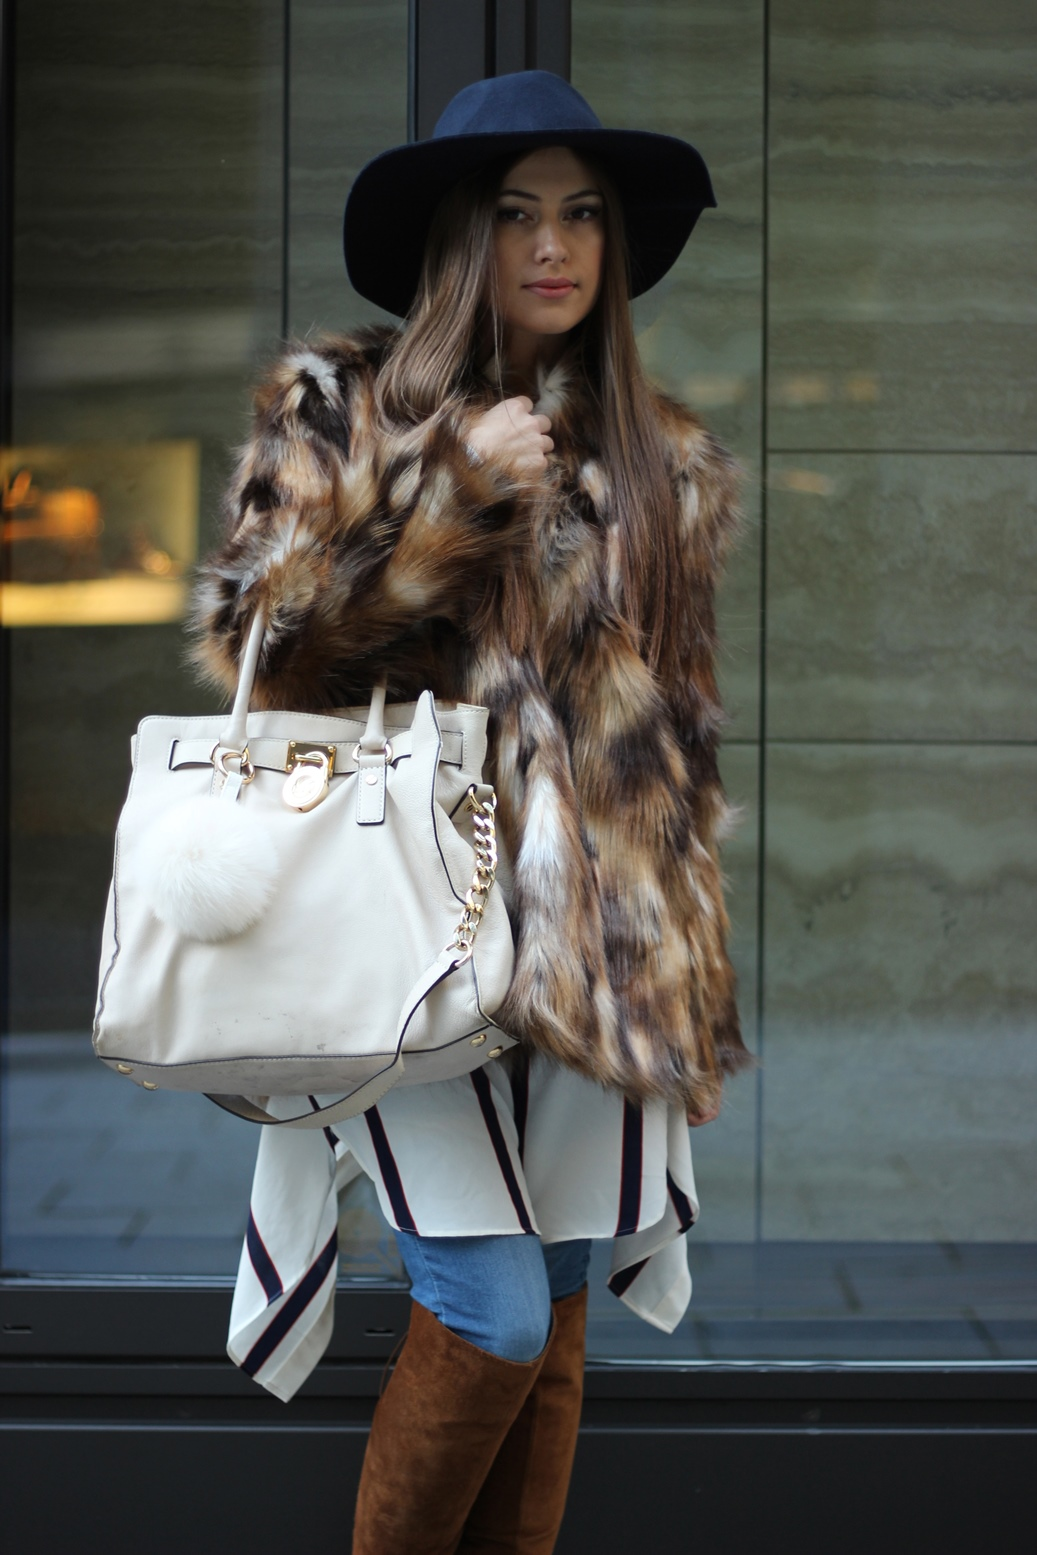 michaelkors-bag-outfit-streetstyle-germany-munich-blog-zara